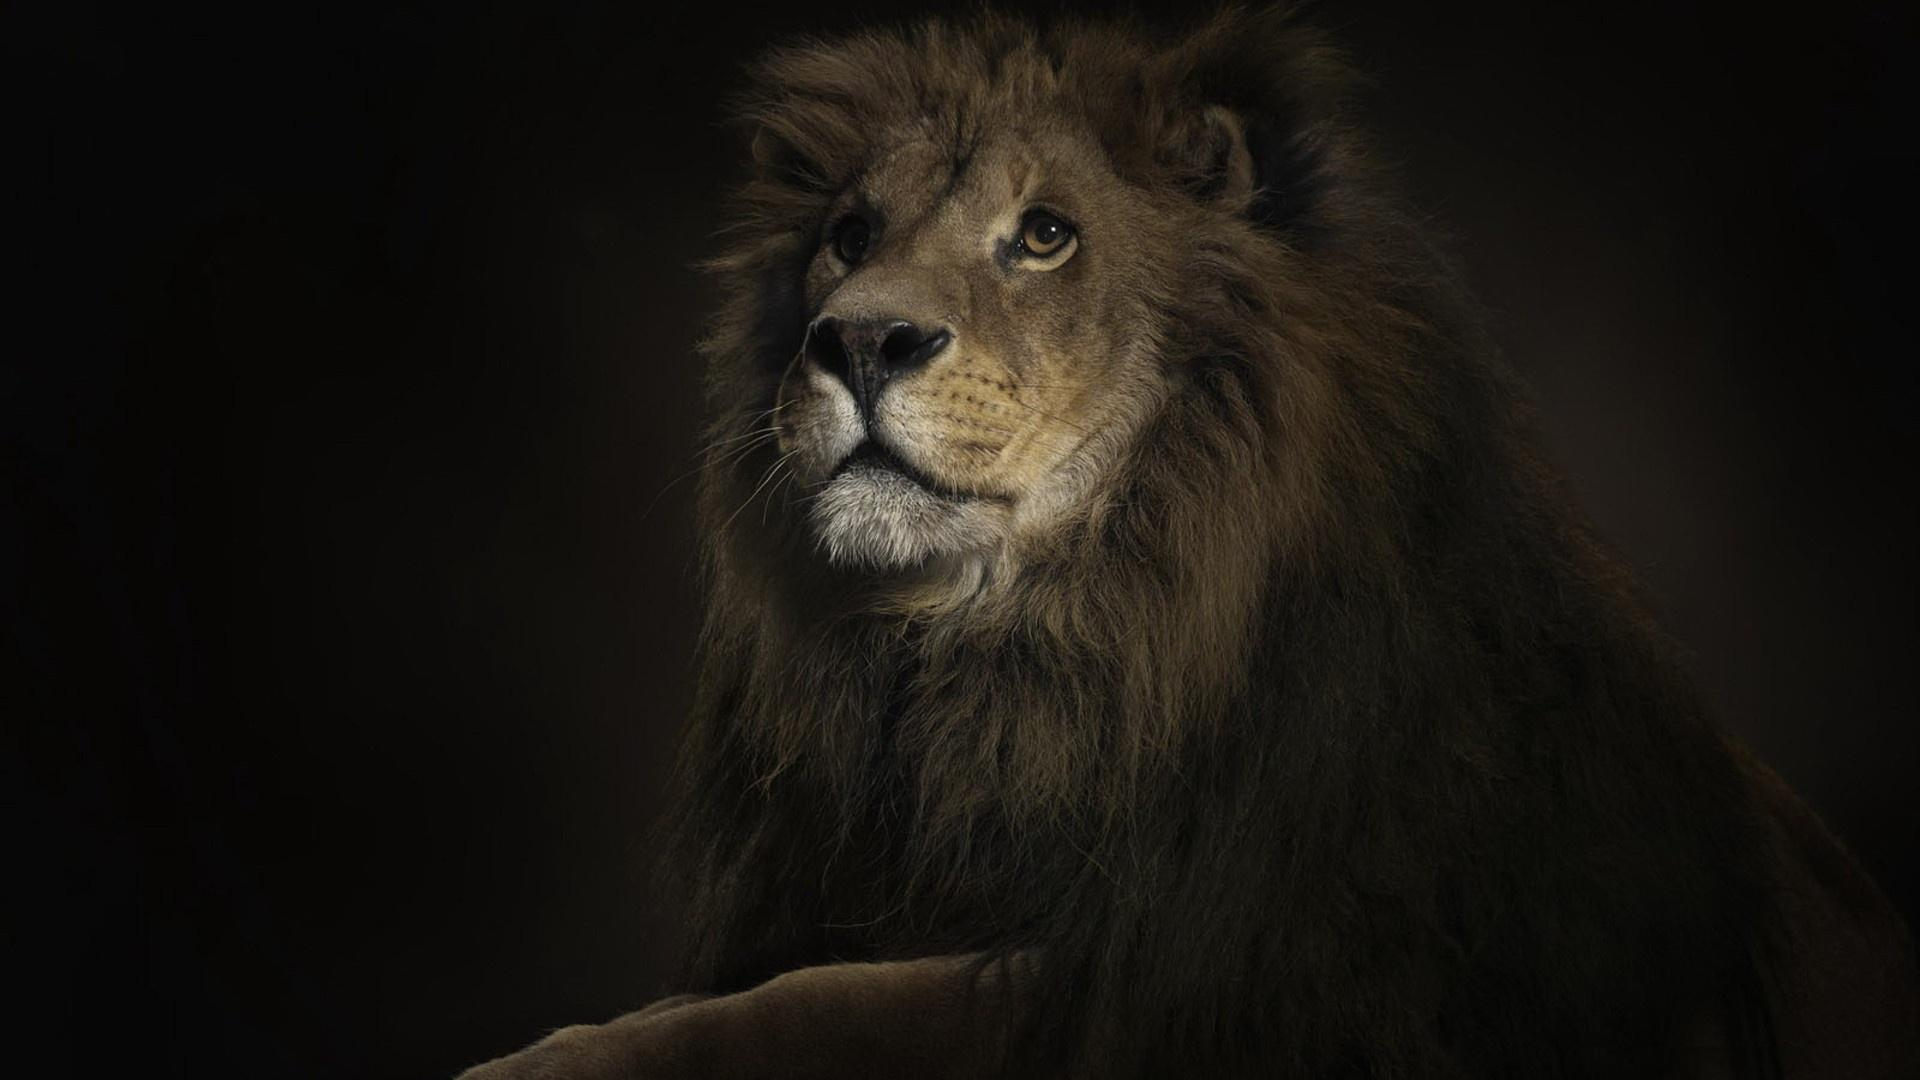 788 Lion Wallpapers | Lion Backgrounds